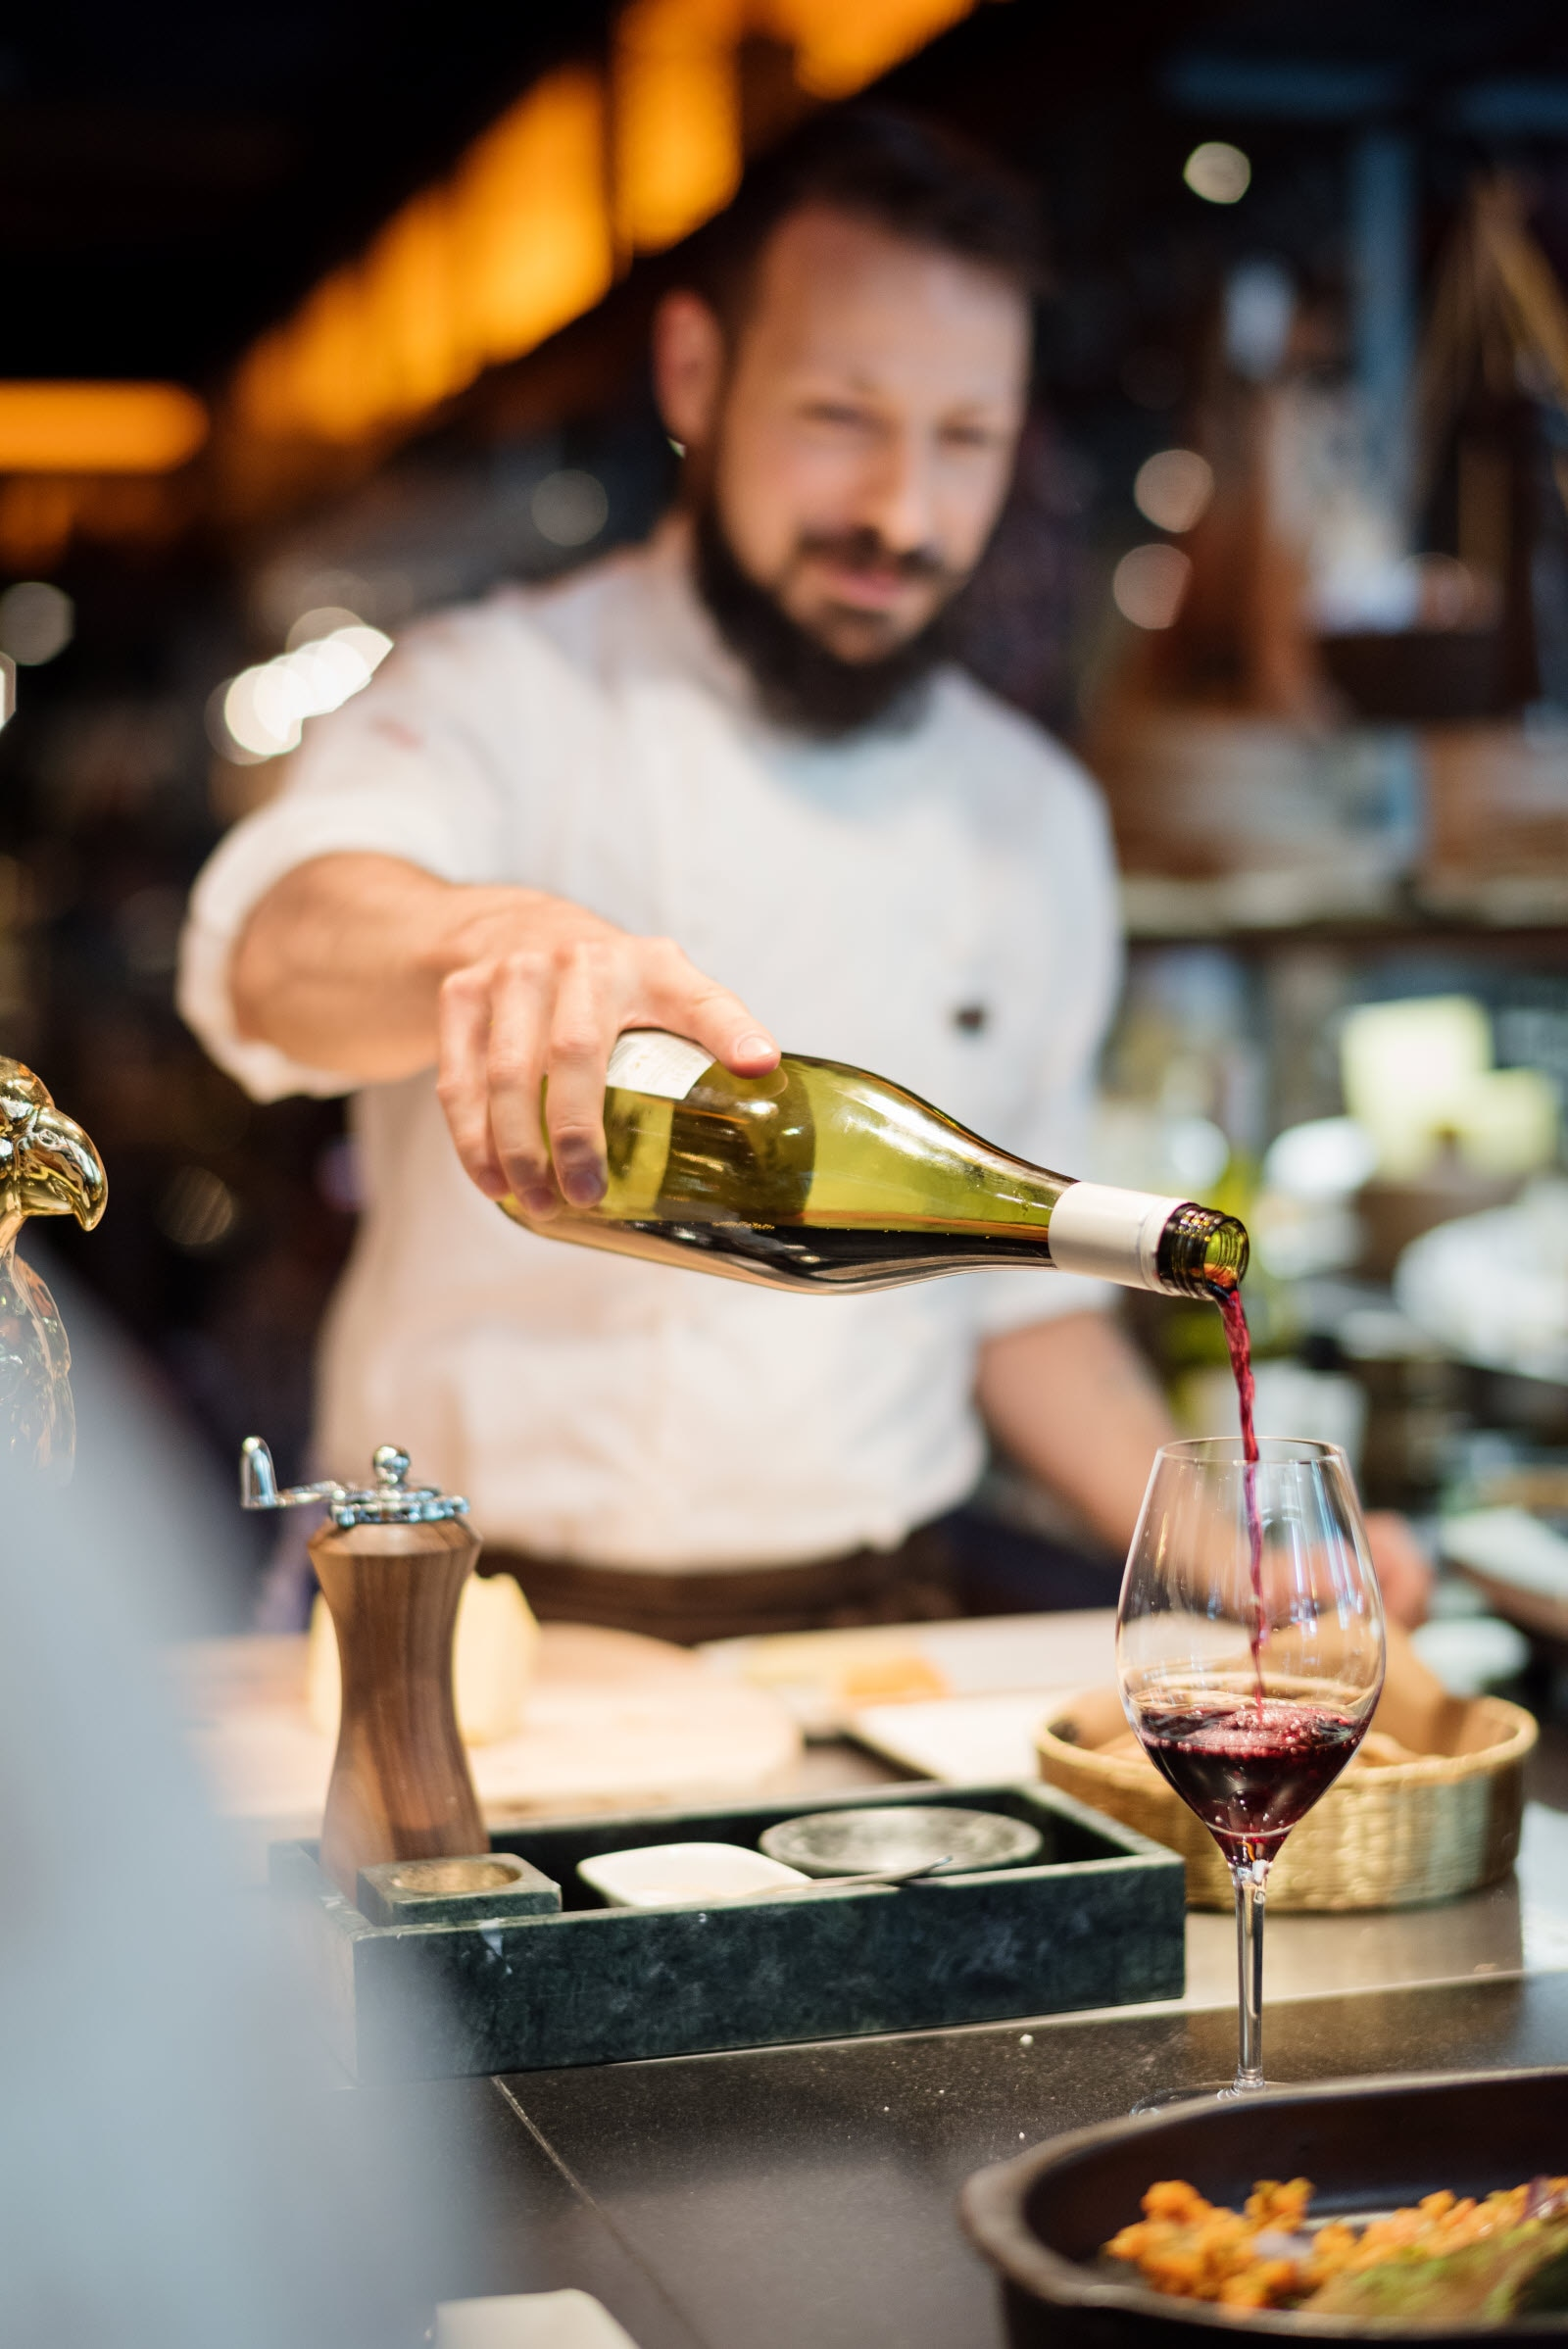 Restaurant staff serving wine